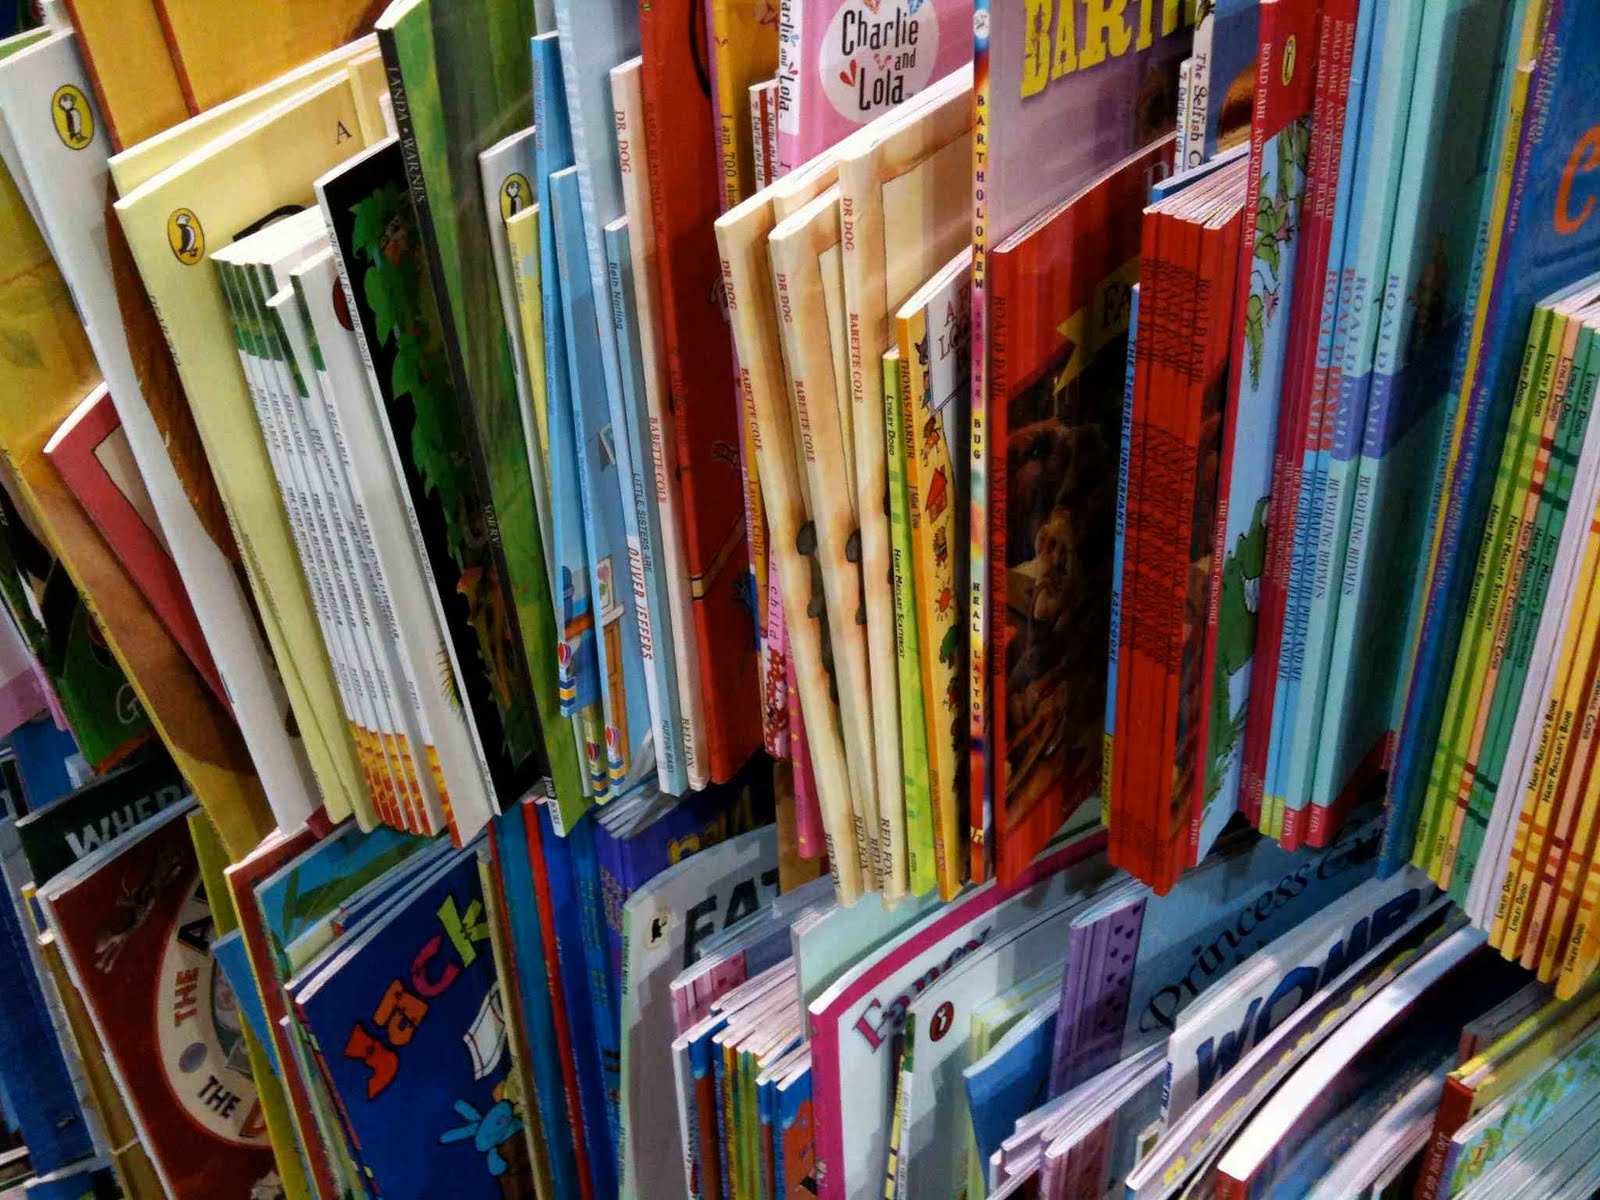 books children need library reading childrens play local spring houston african thrift partnership bring area child break read defendernetwork musicians